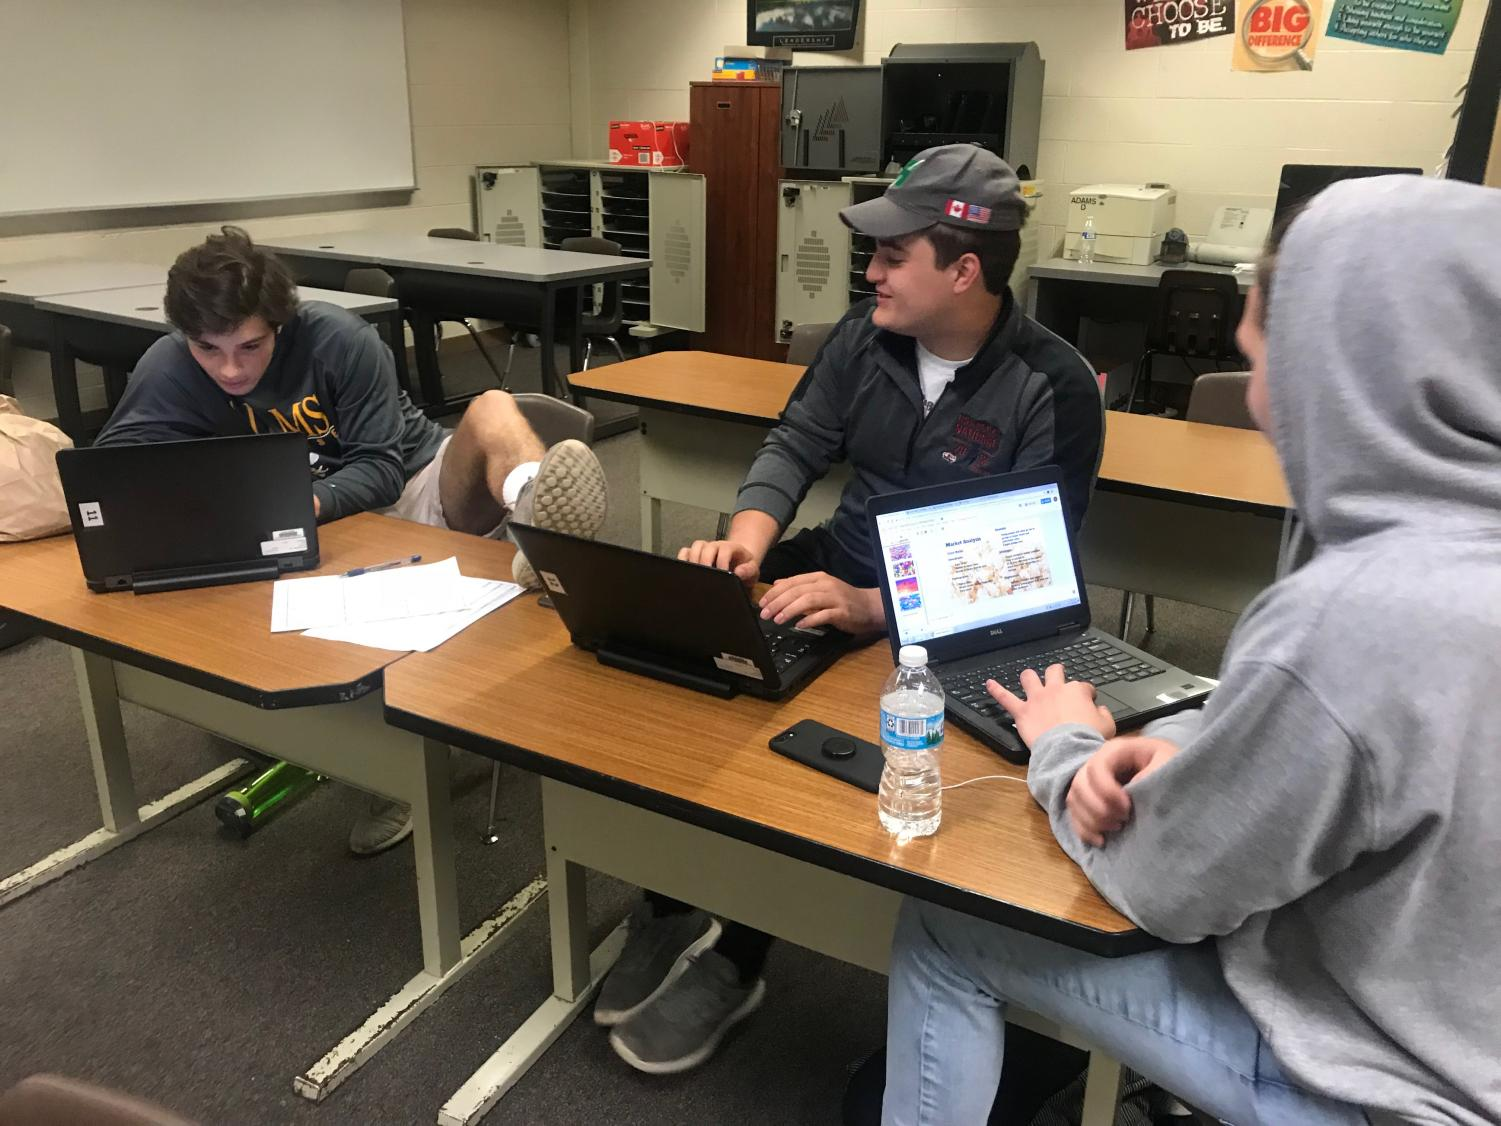 Juniors Carlo Munaco and Domenico Munaco and senior Christian Vataj in their Advanced Marketing and Advertising class utilizing their school-provided technology.